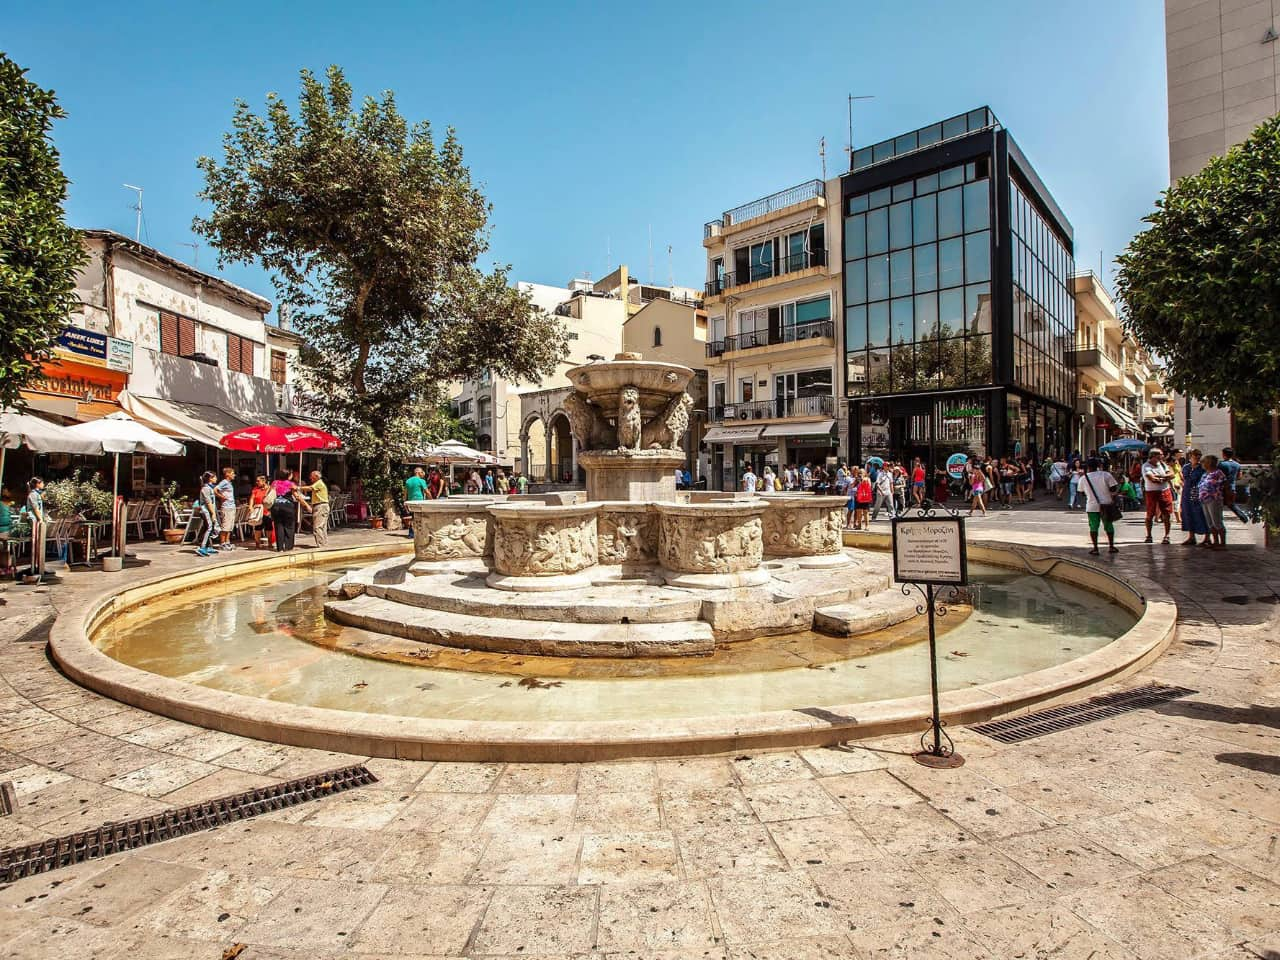 heraklion lion's square, meet the minotaur, Palace of Knossos and the Archaeological Museum of Heraklion, historical tour knossos, historical tour heraklion crete, chania excursion tour to knossos and archaeological museum heraklion